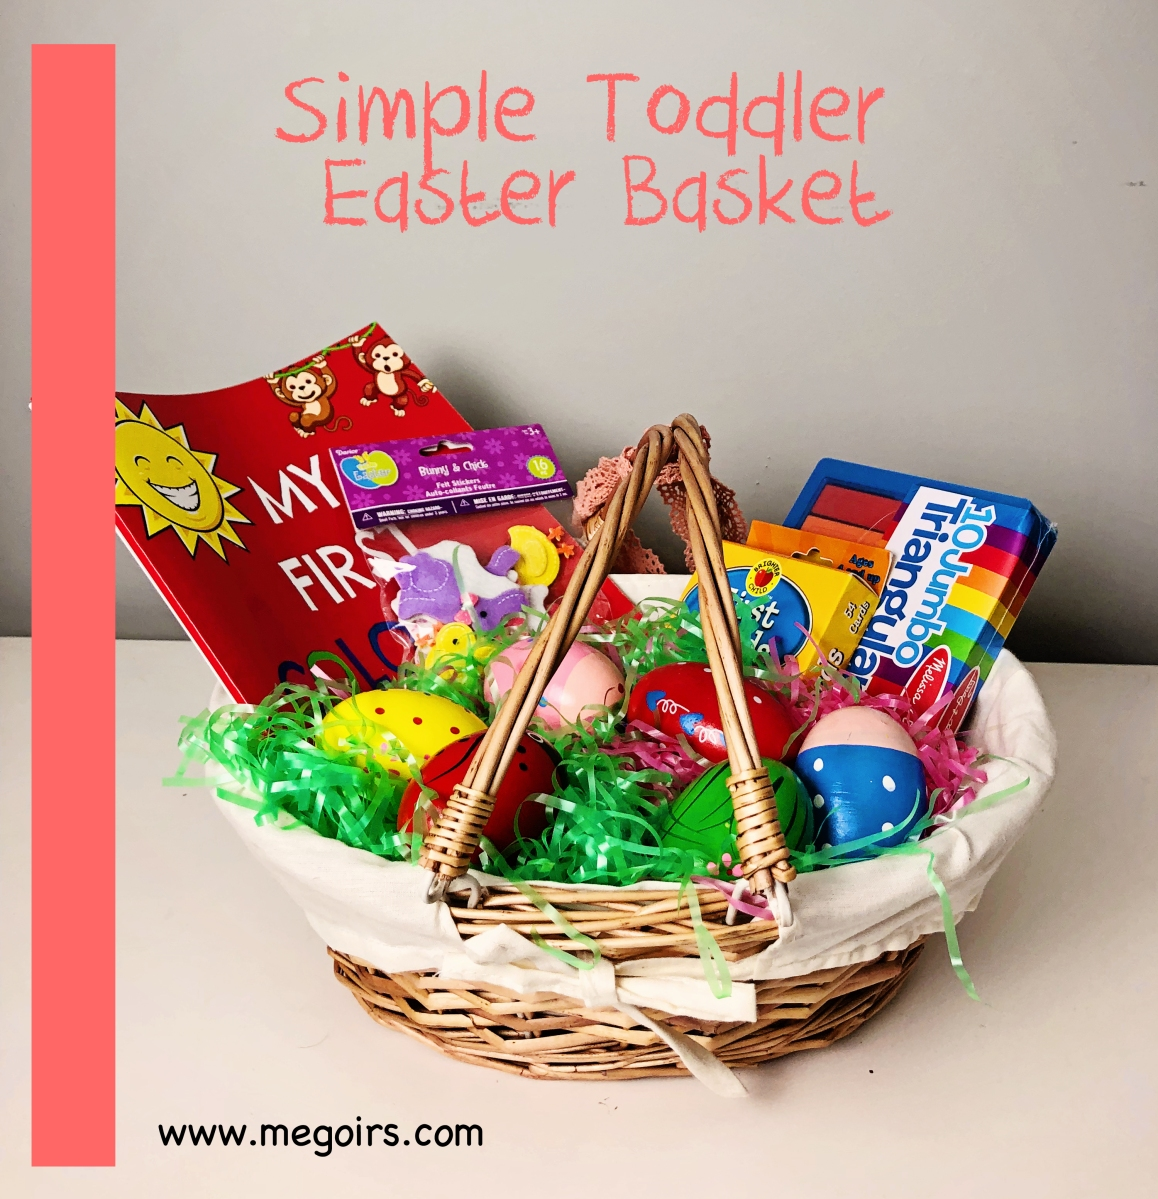 Simple Toddler Easter Basket